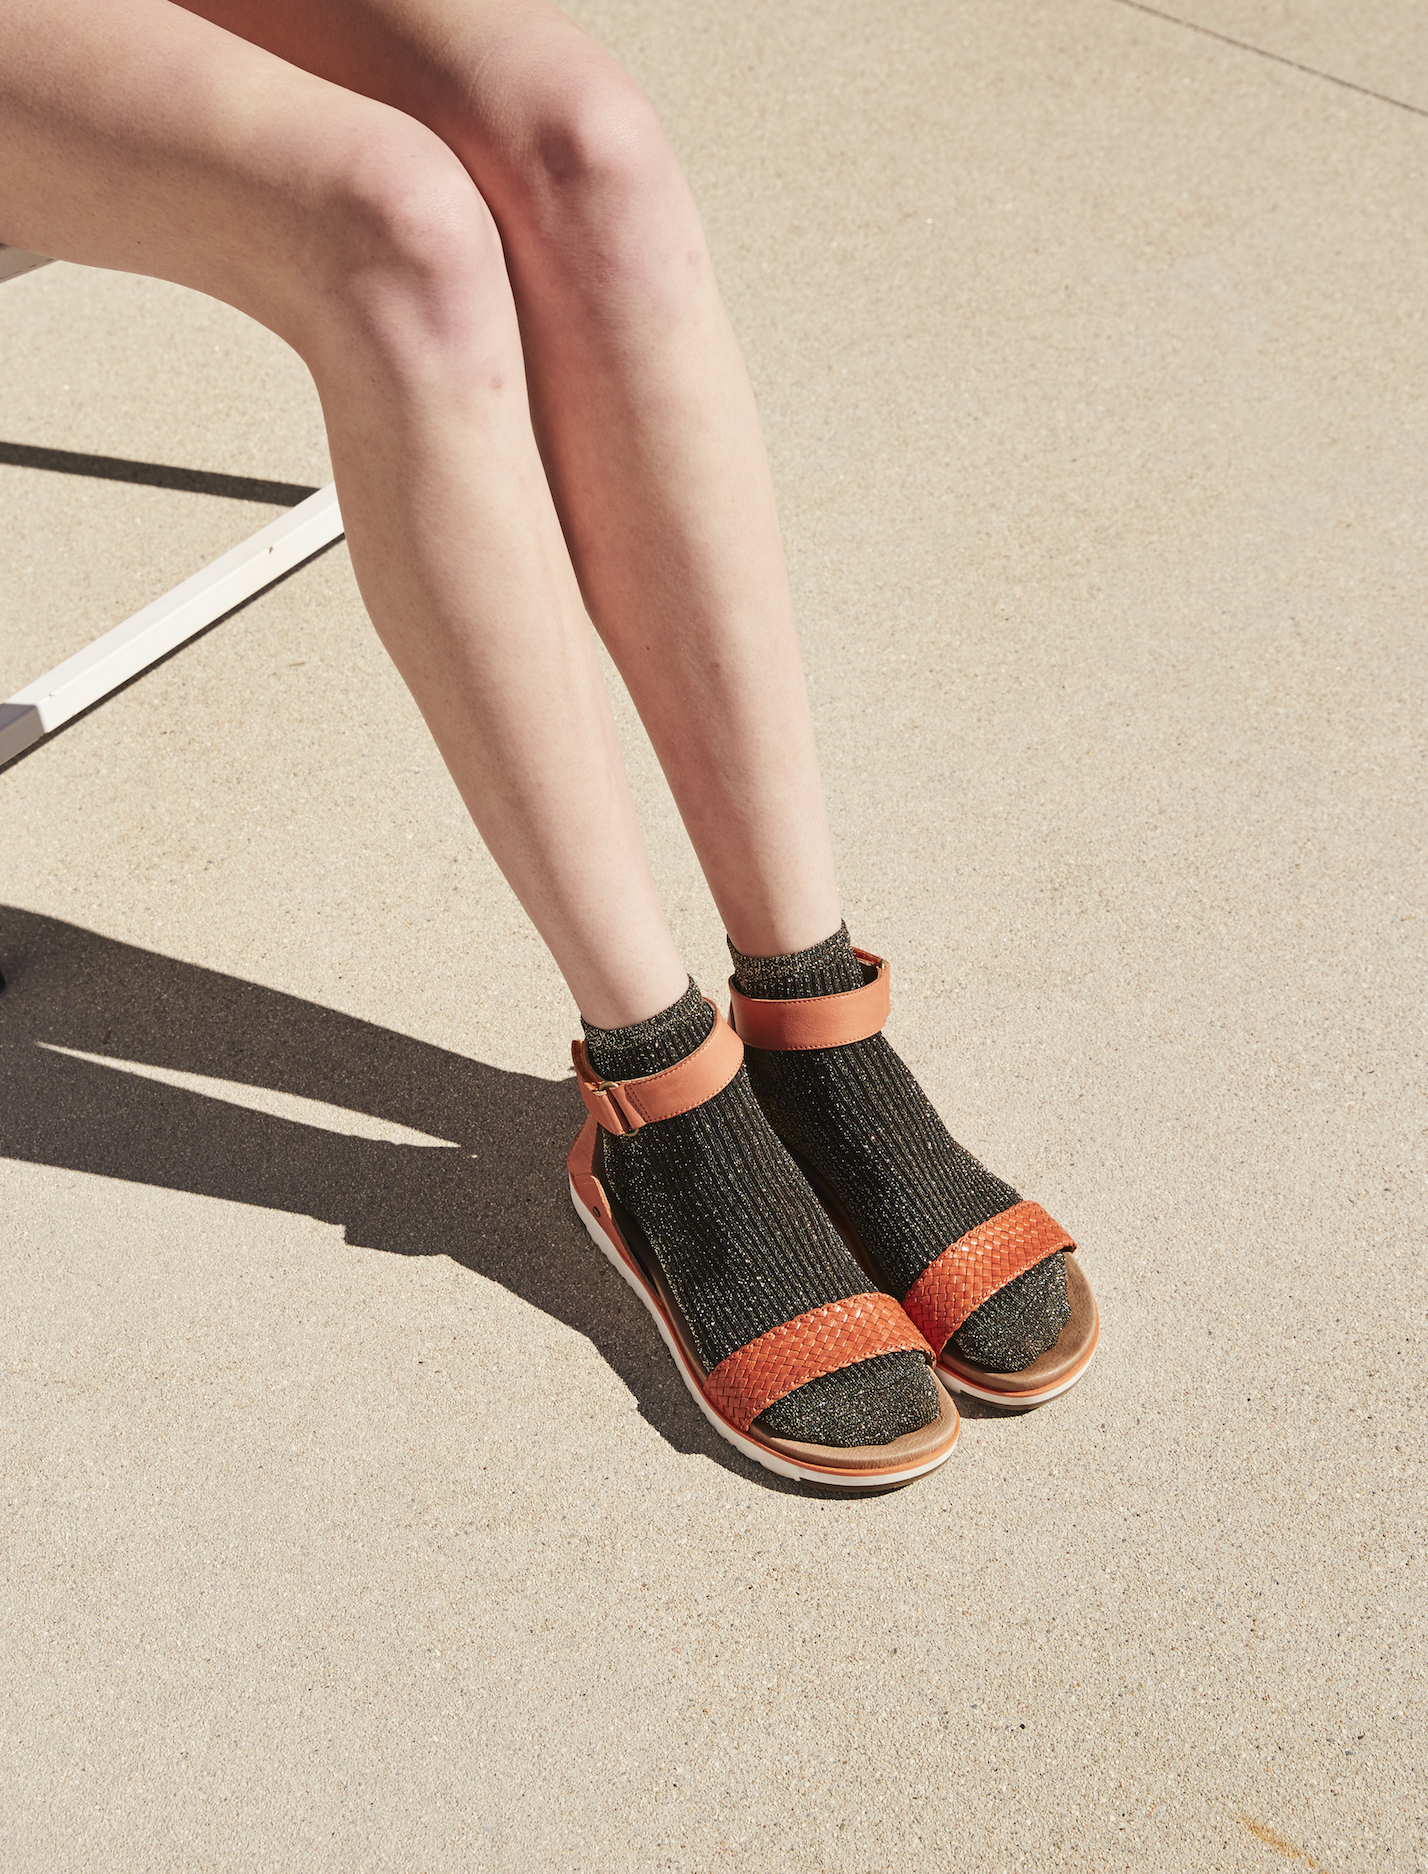 Socks and Sandals: A Fashion Do